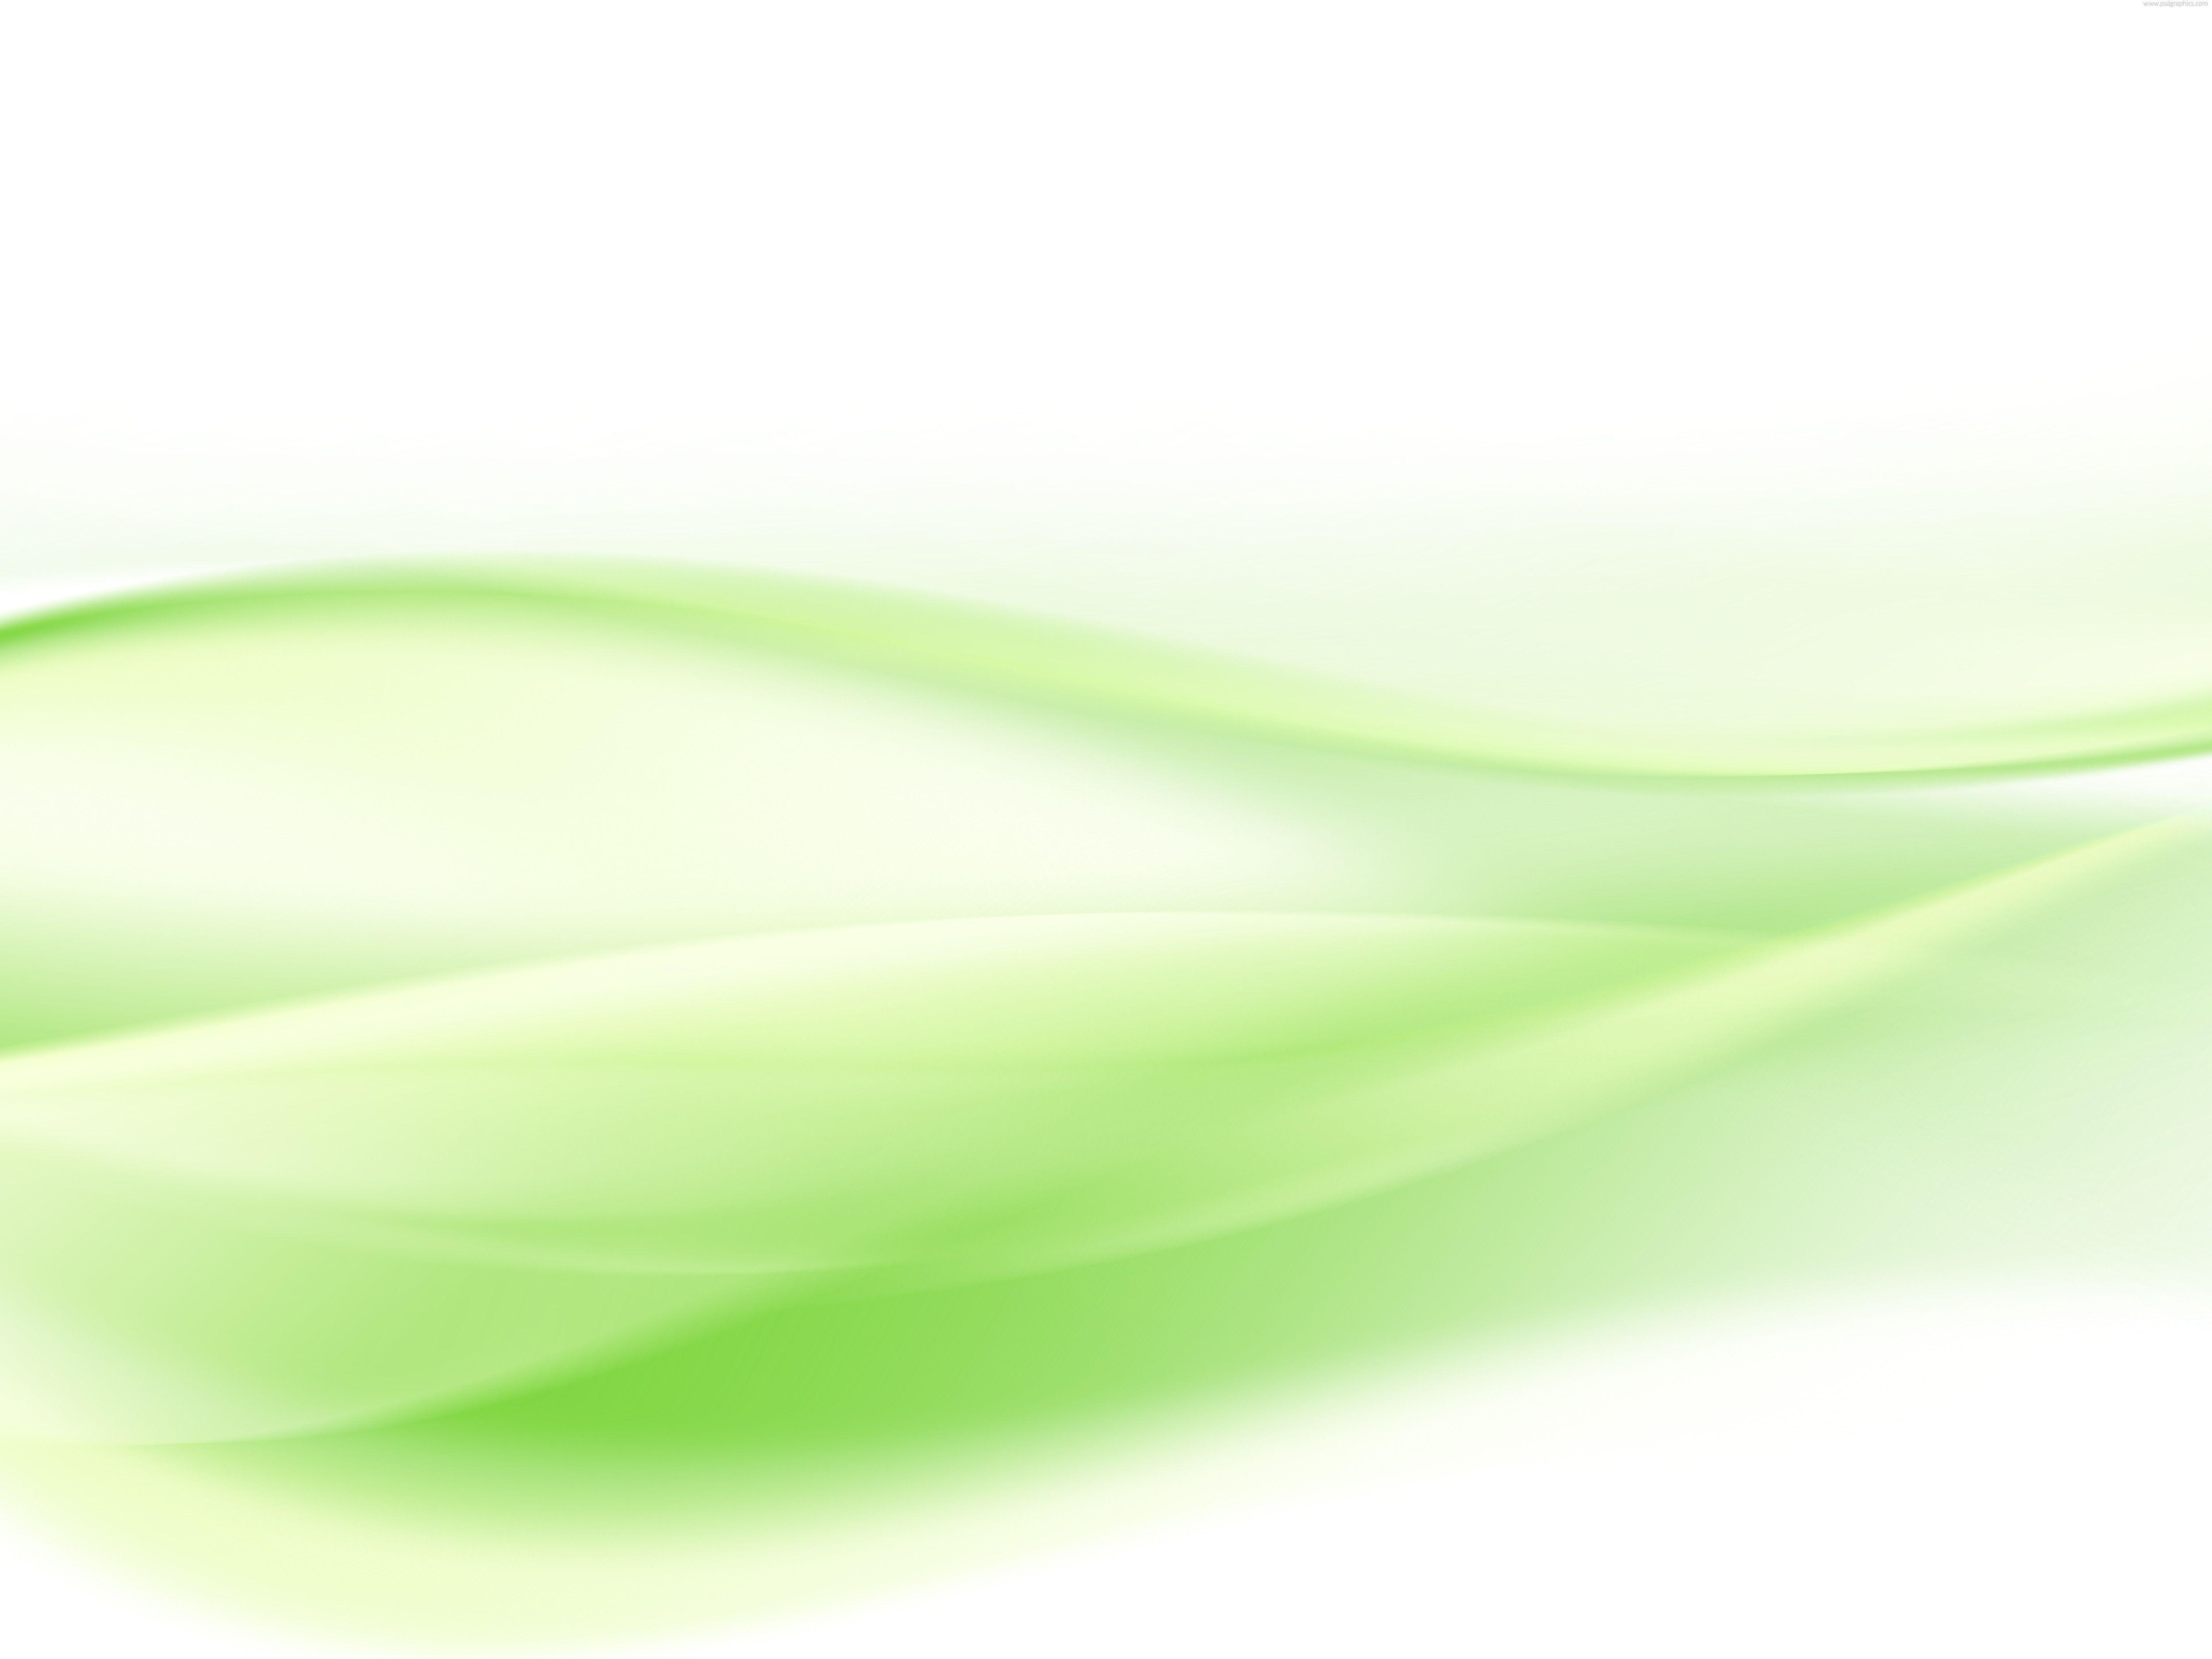 light green color backgrounds - photo #25